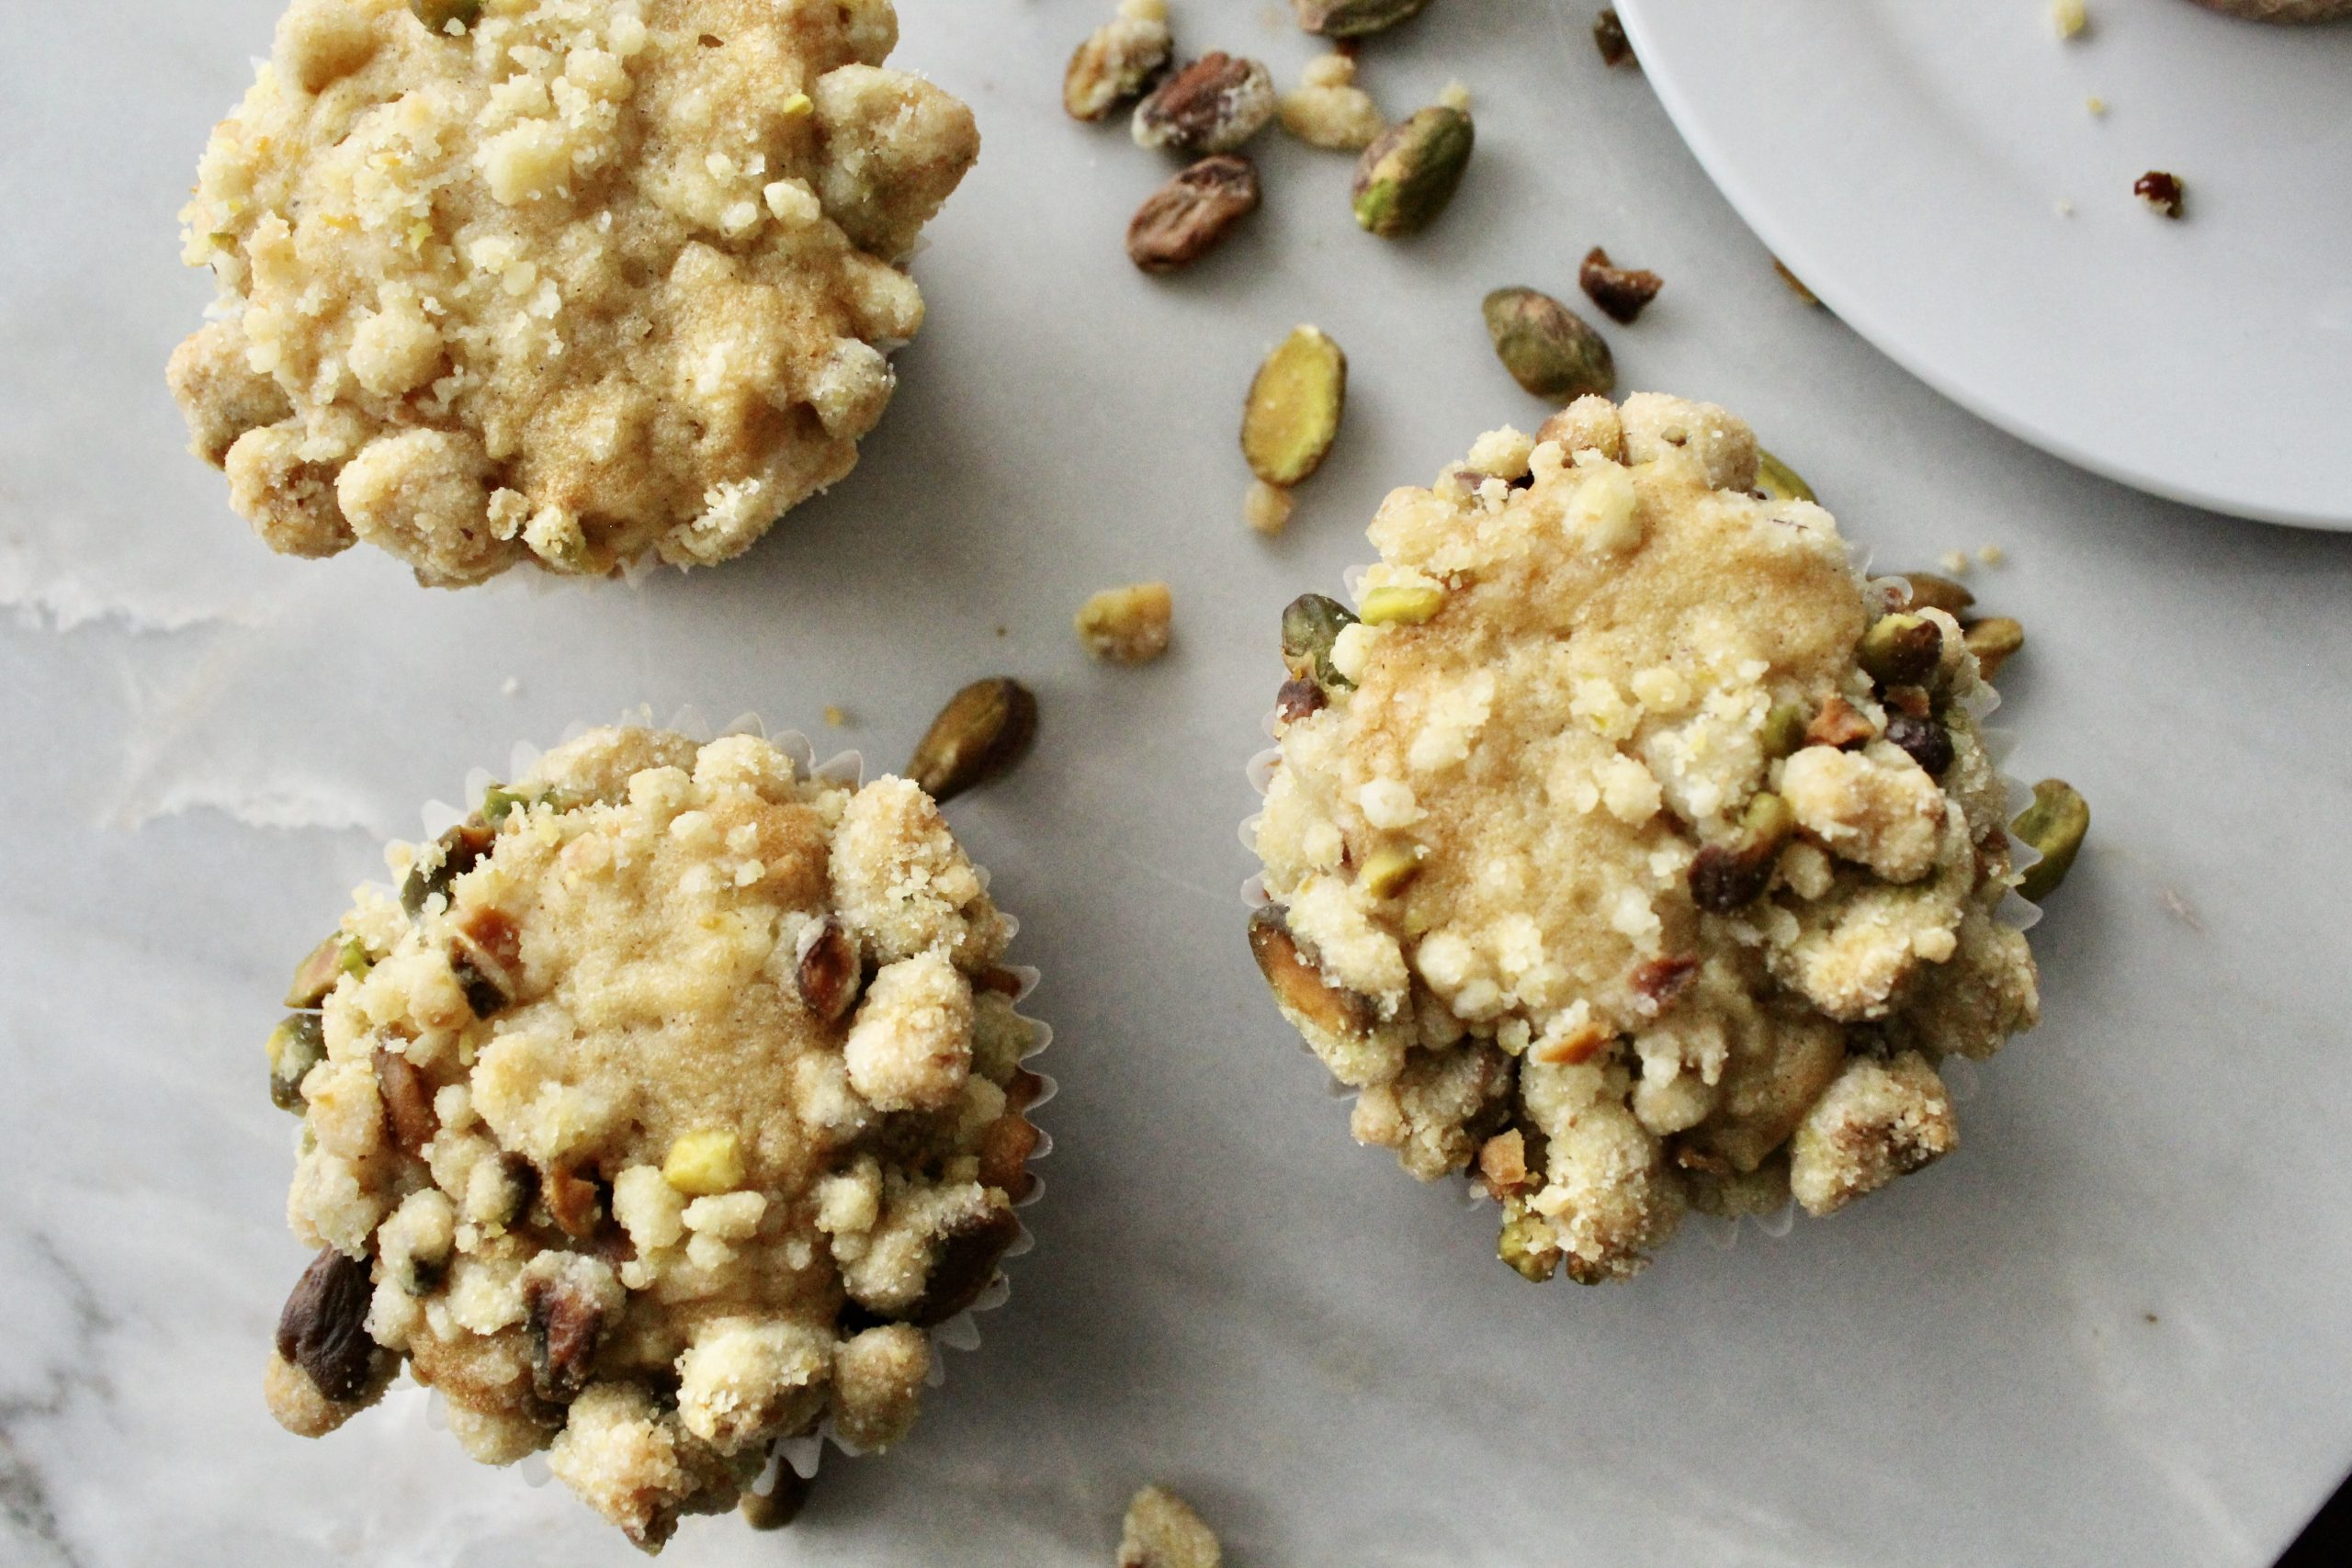 Spiced Apple and Pistachio Streusel Muffins